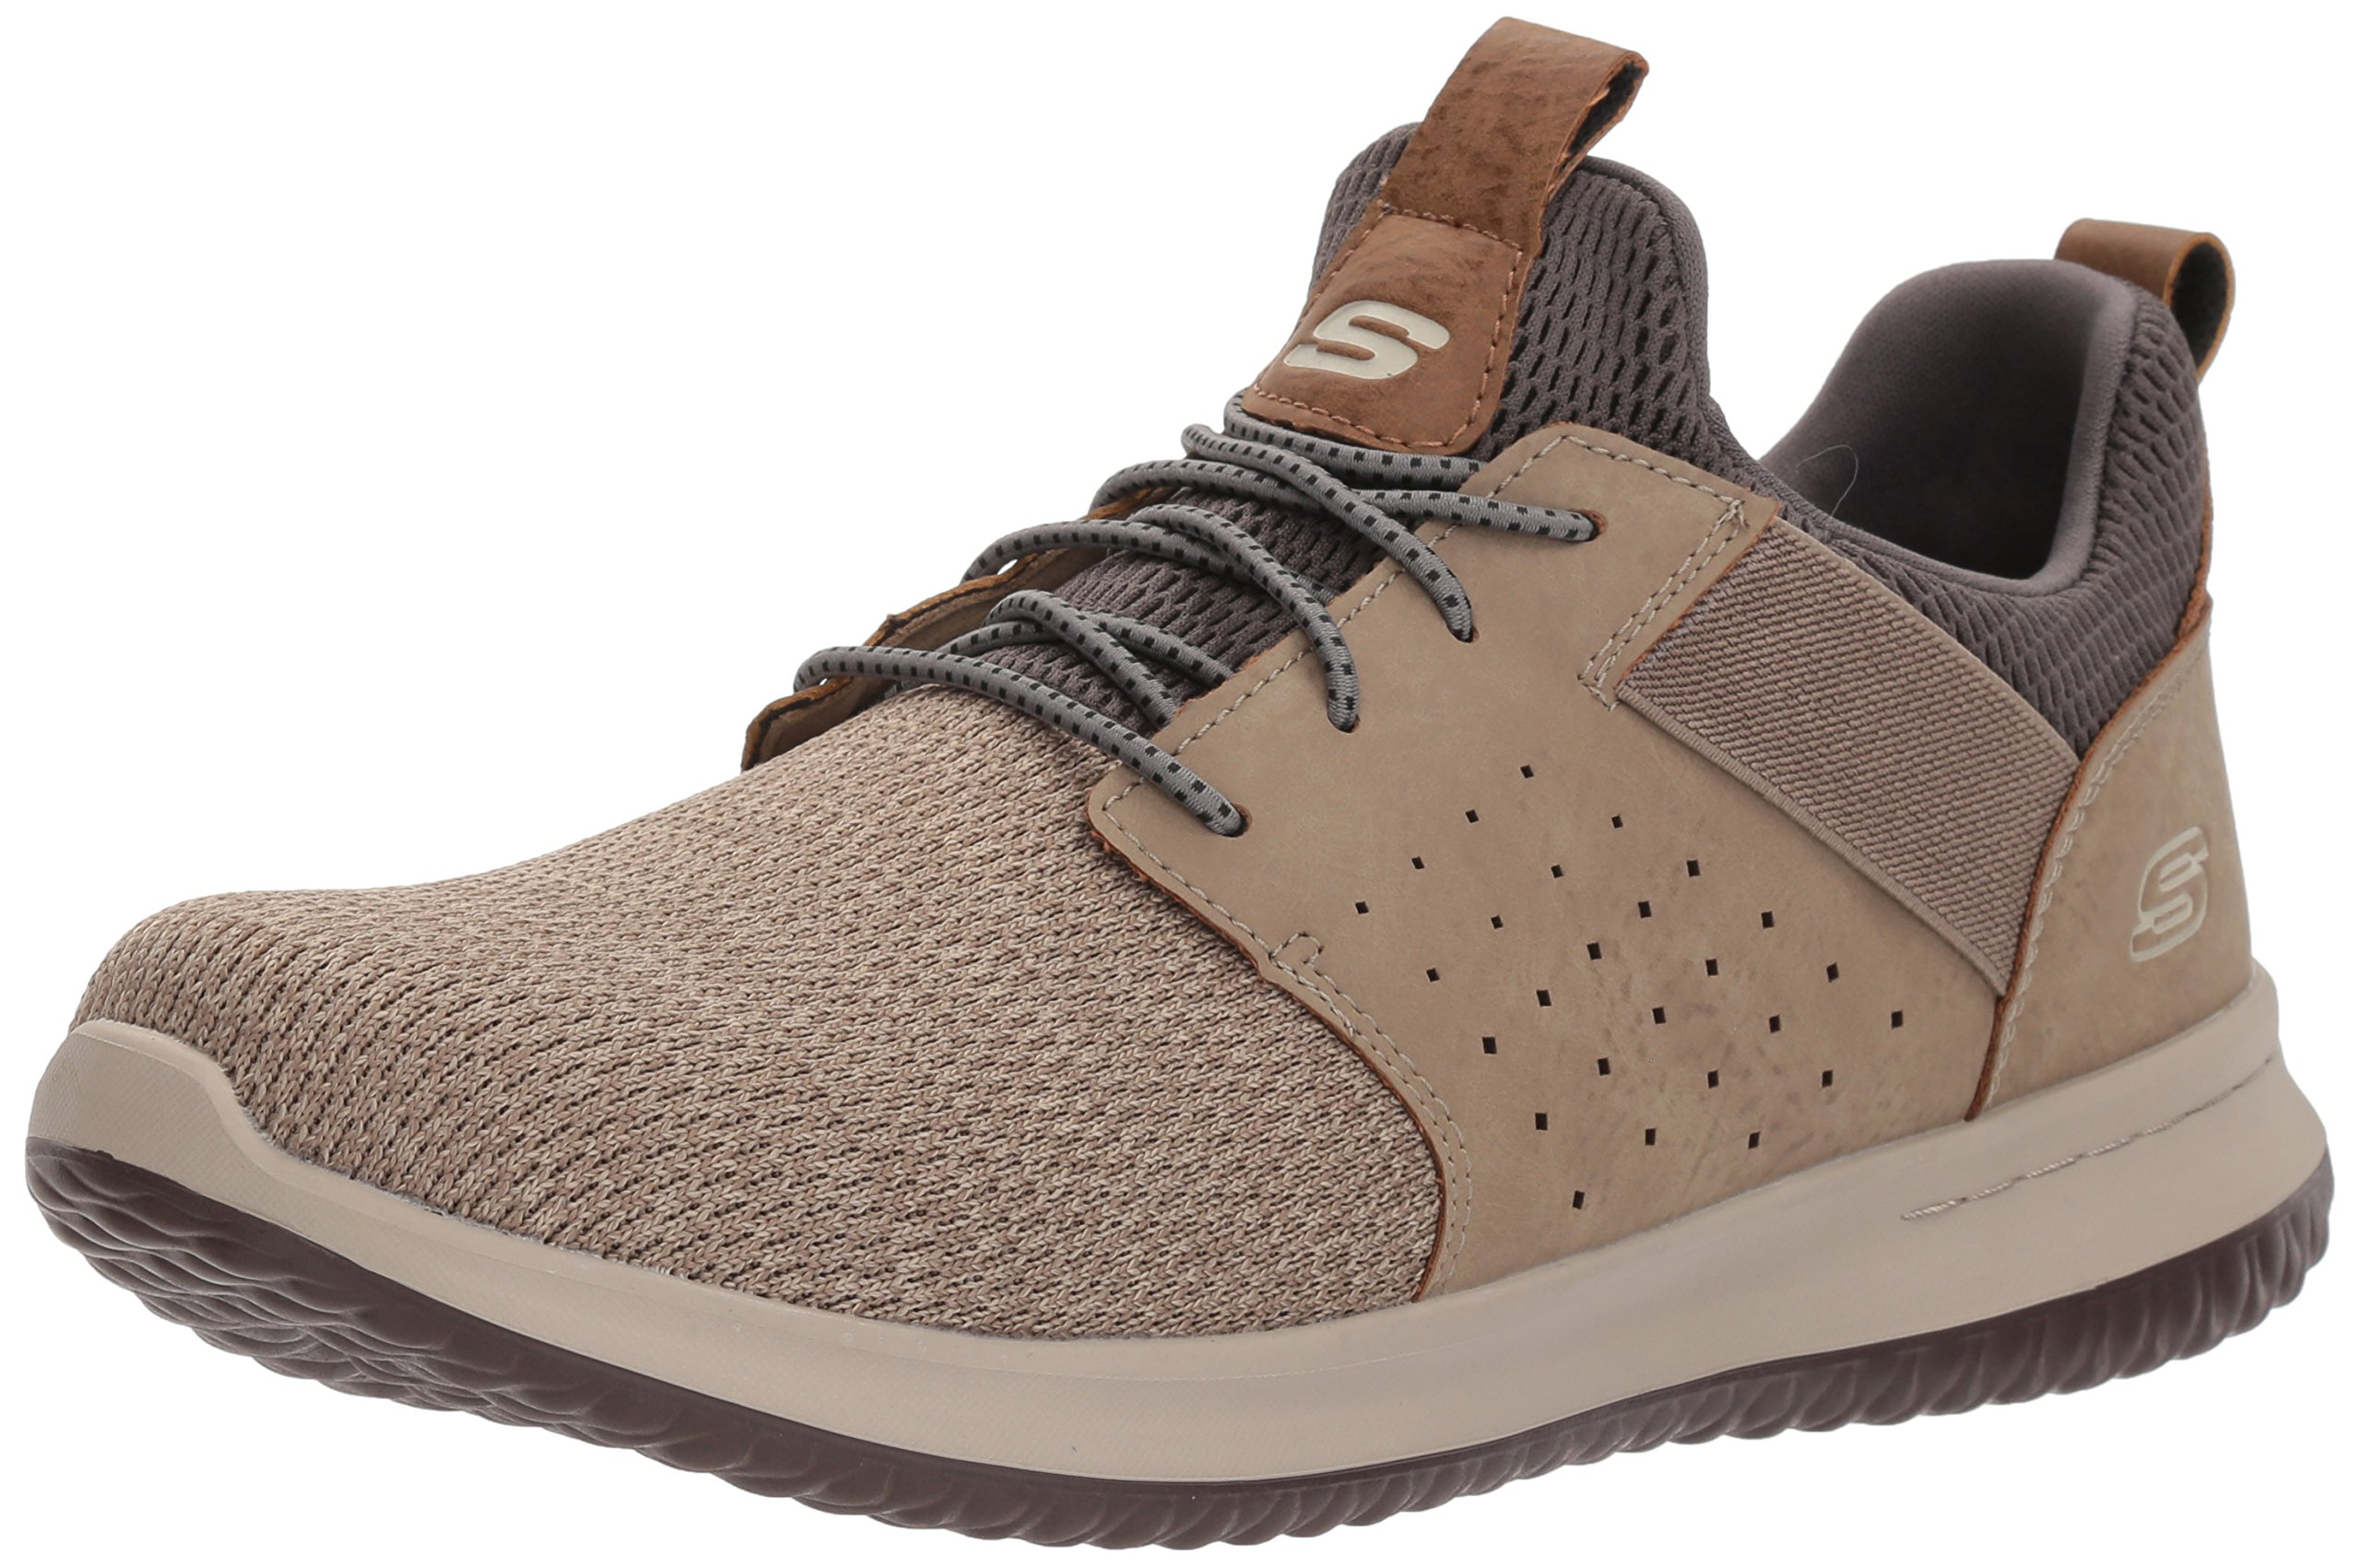 Skechers Men's Classic Fit-Delson-Camden Sneaker,Taupe,13 Wide US